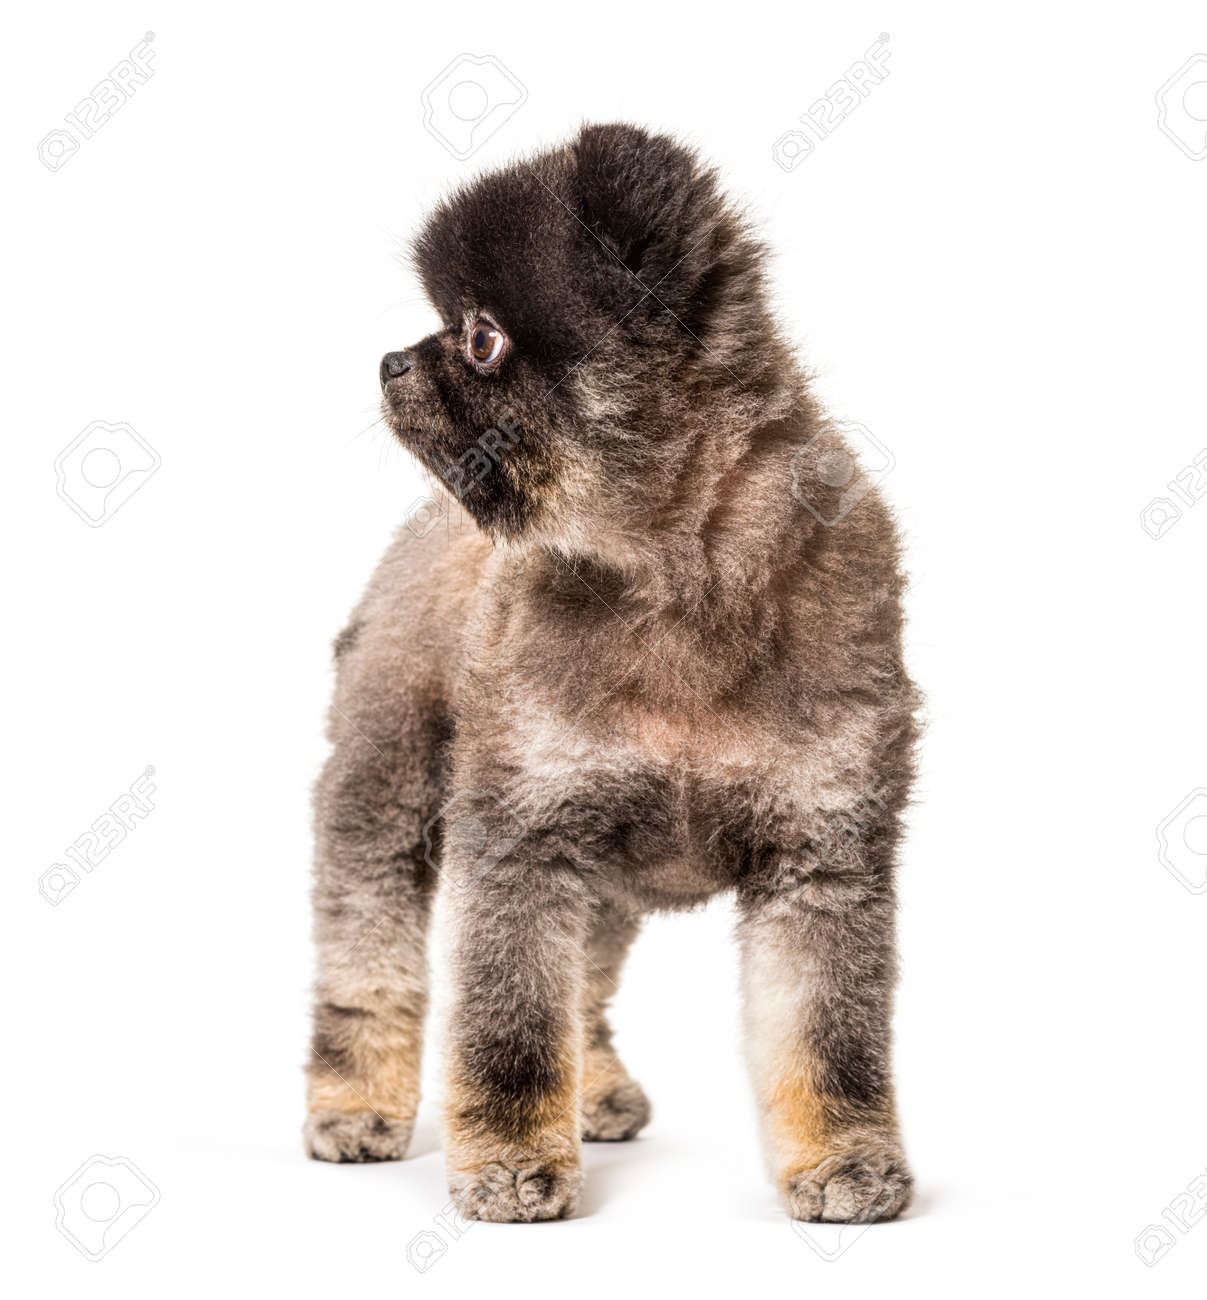 Brown and Black groomed spitz dog standing on a white background - 171049289